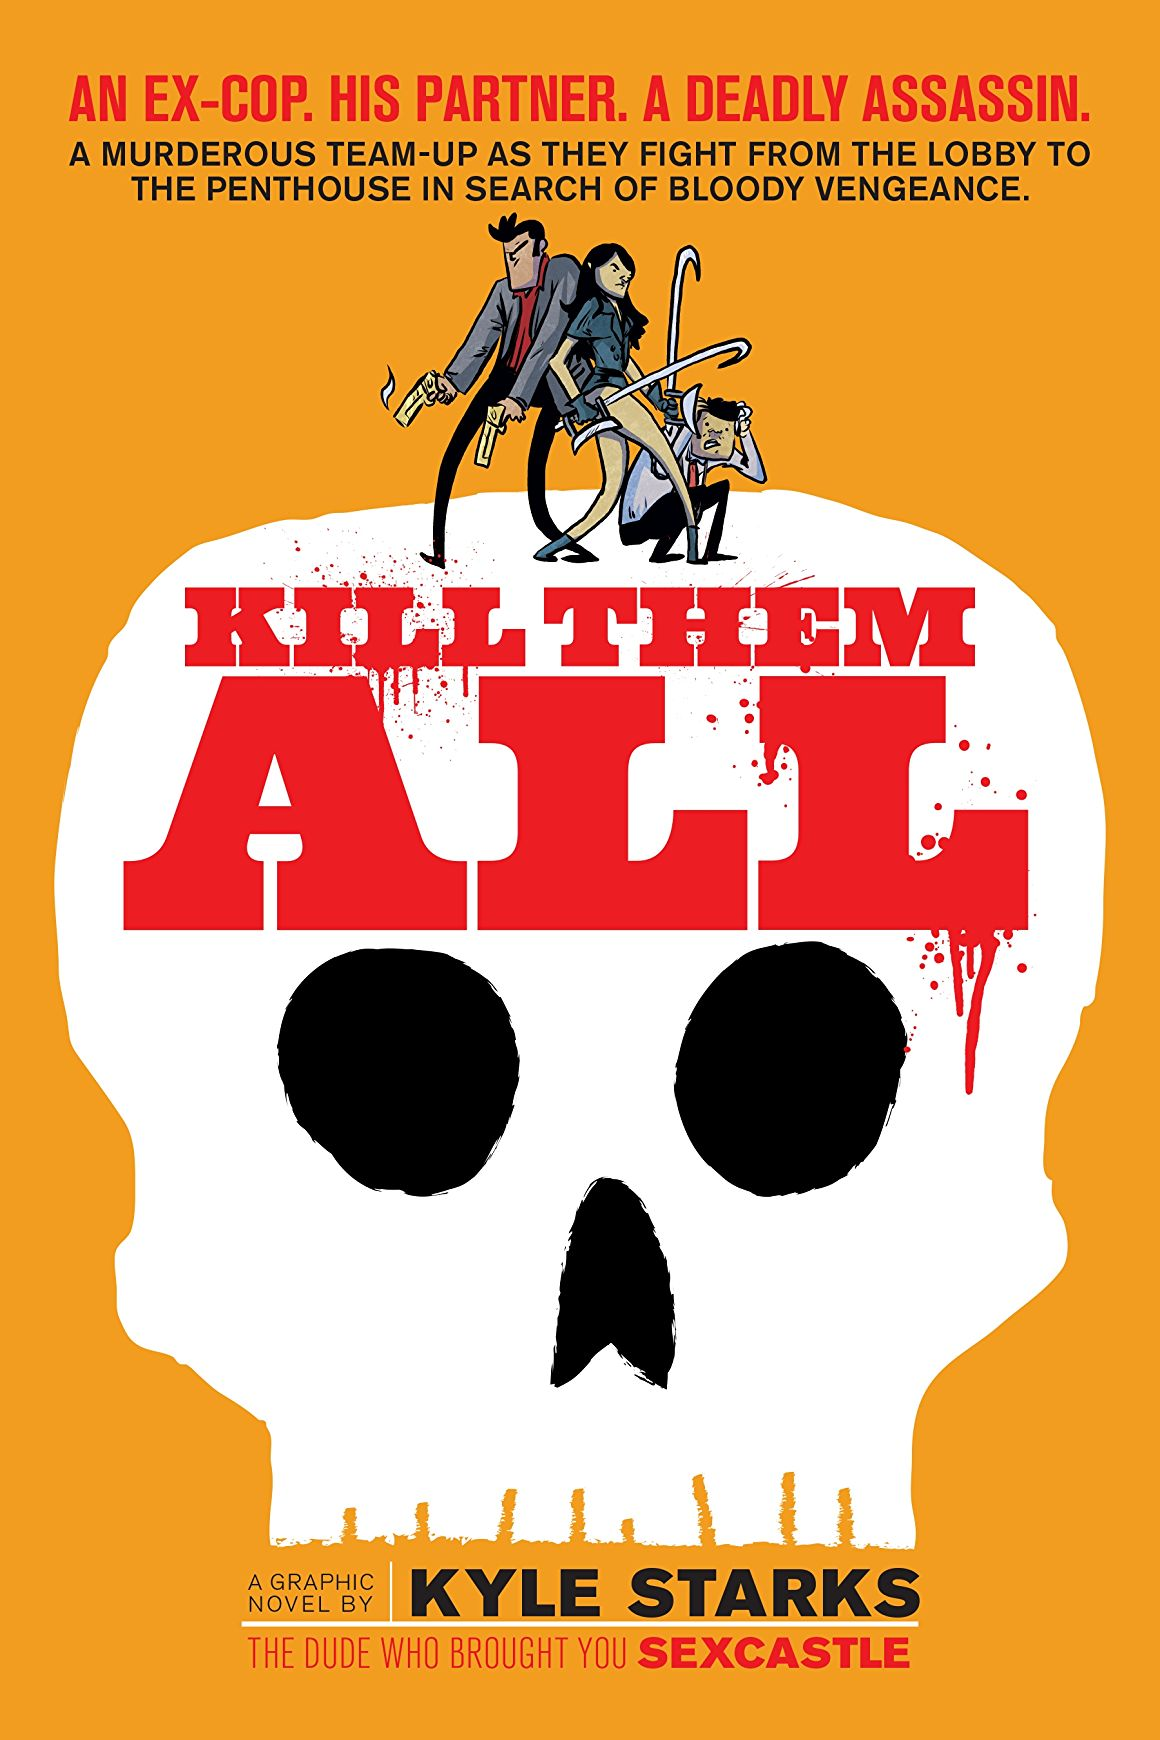 'Kill Them All' review: Kyle Starks' love letter to 90s action movies